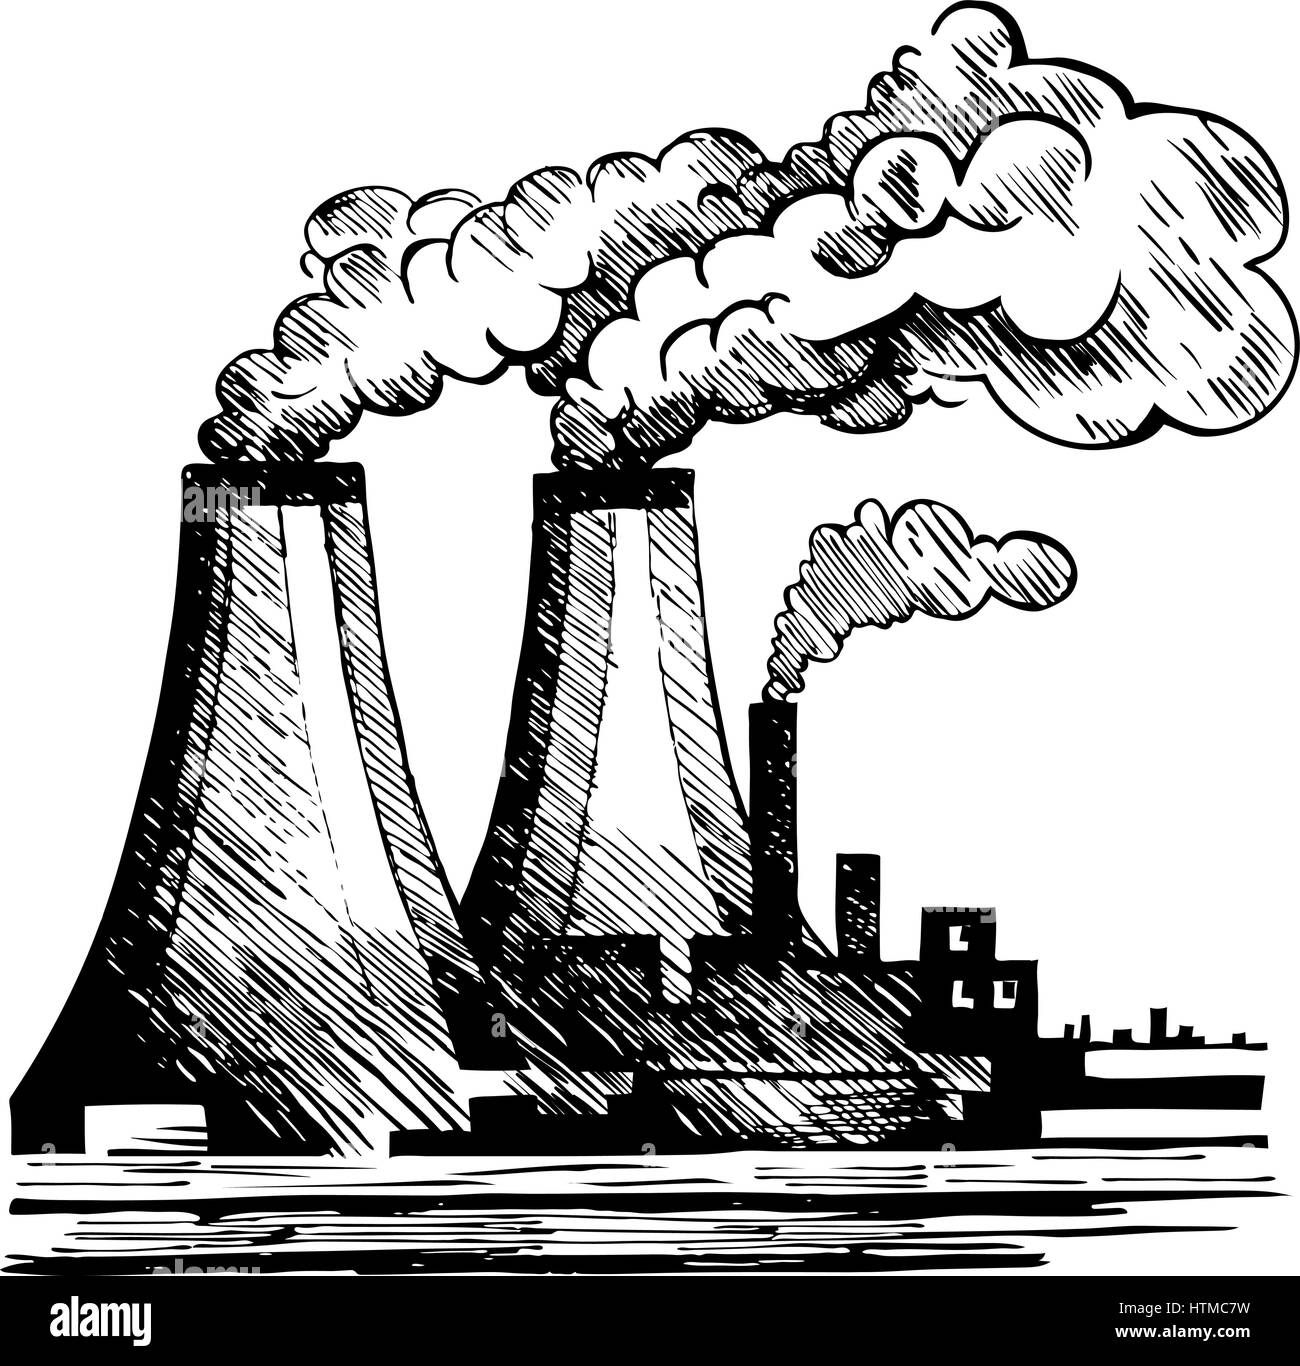 Draw About Pollution Black And White